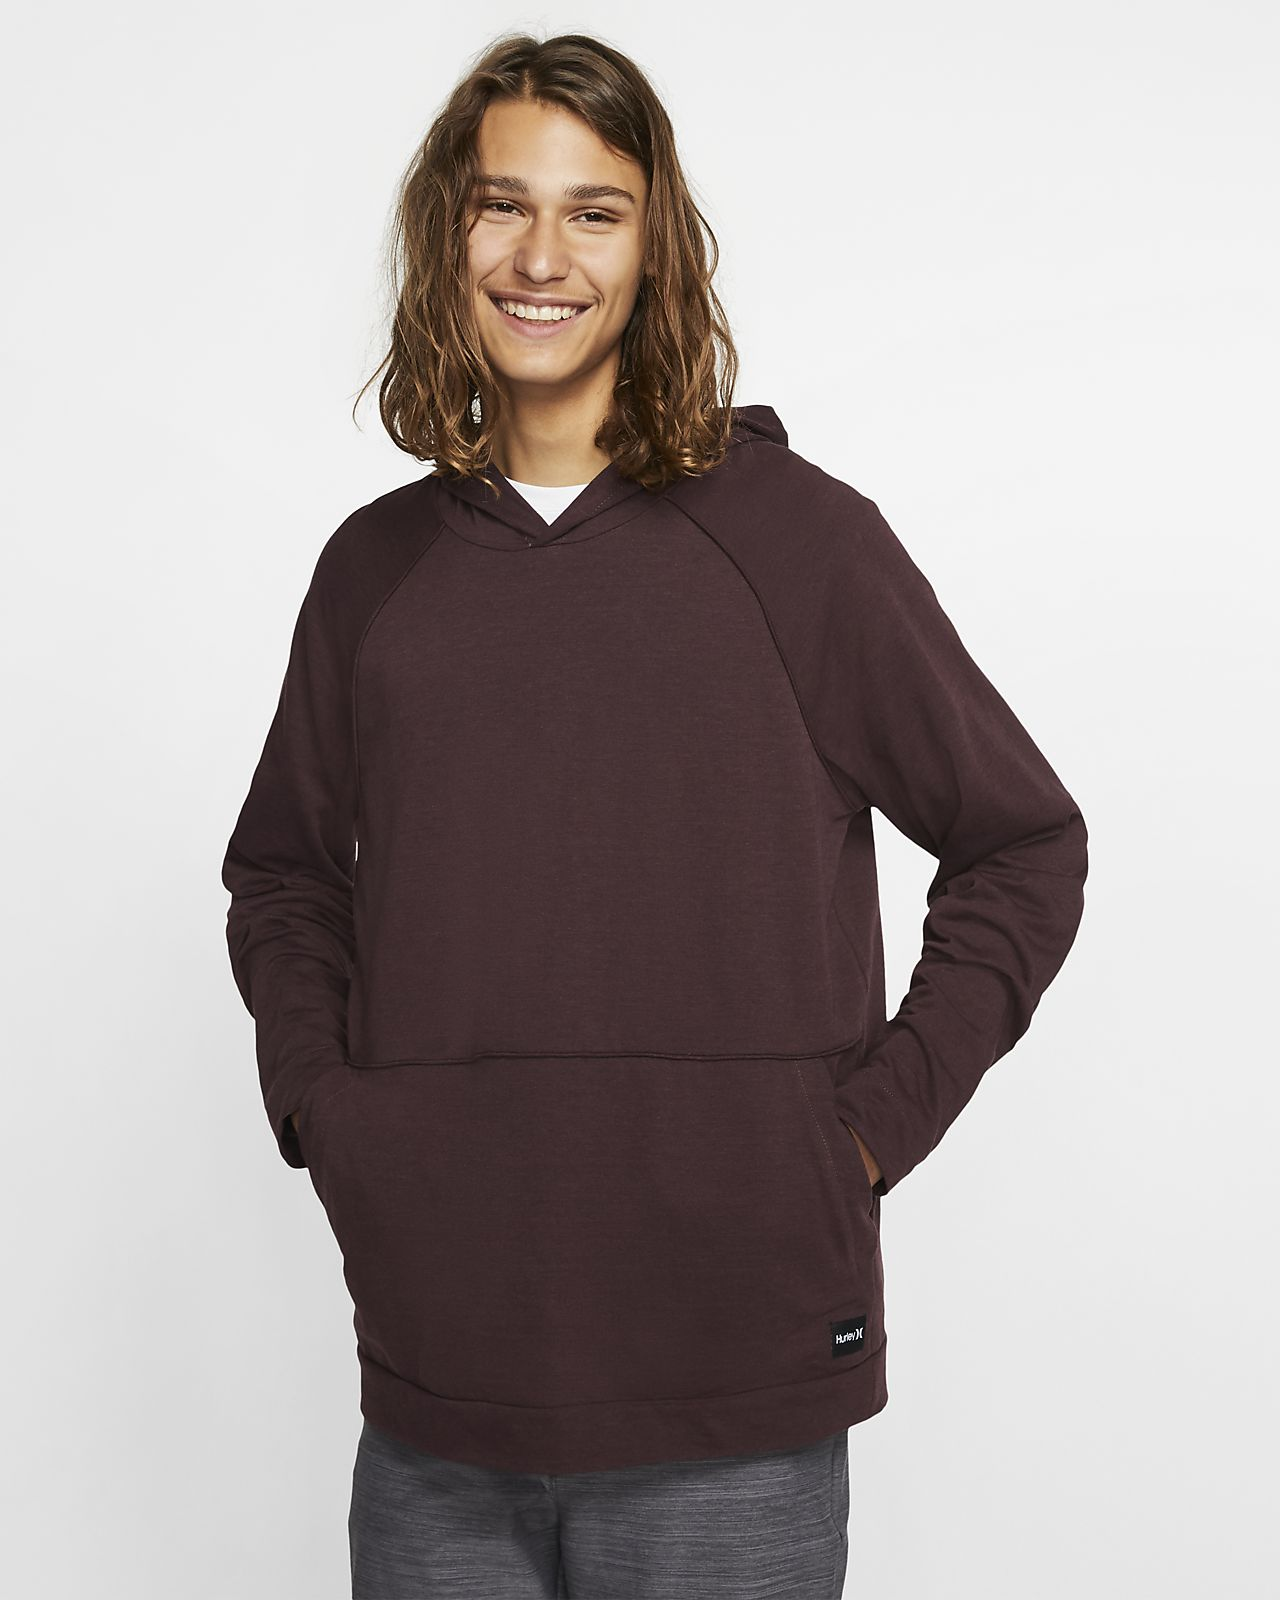 Hurley Dri-FIT Mongoose Men's Long-Sleeve Pullover Hoodie